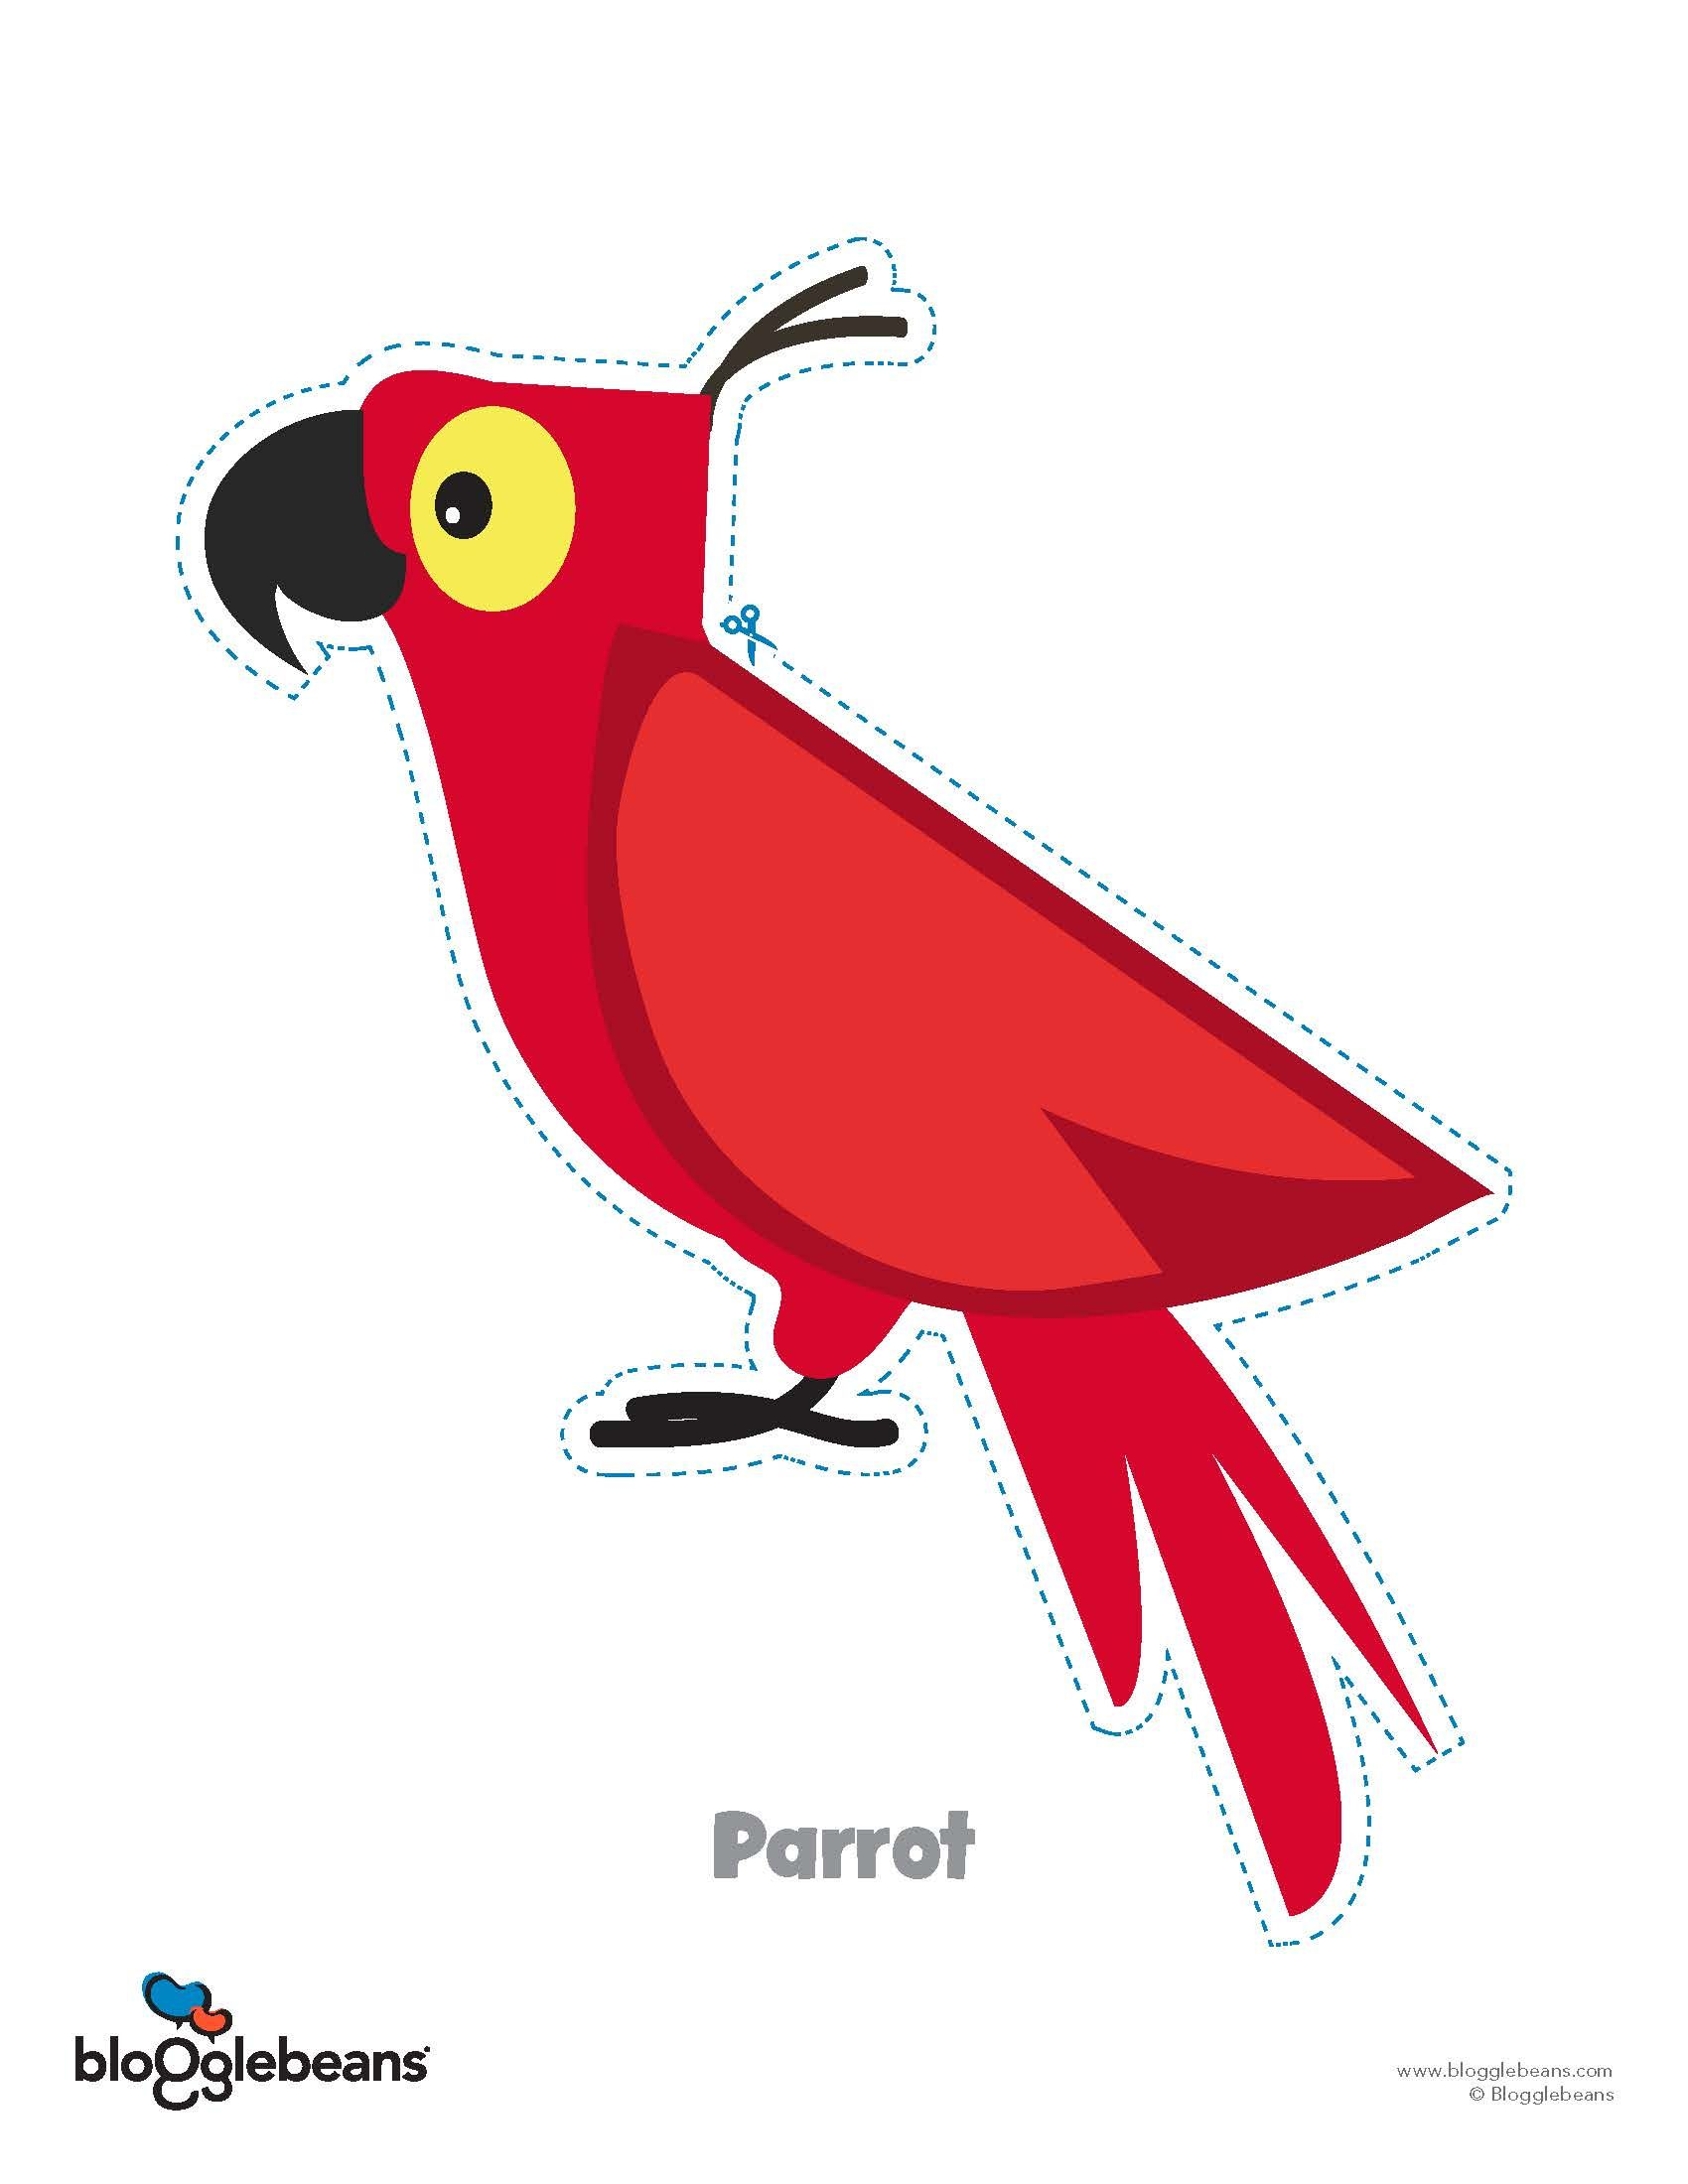 Every pirate needs a pet parrot Check out our free pirate